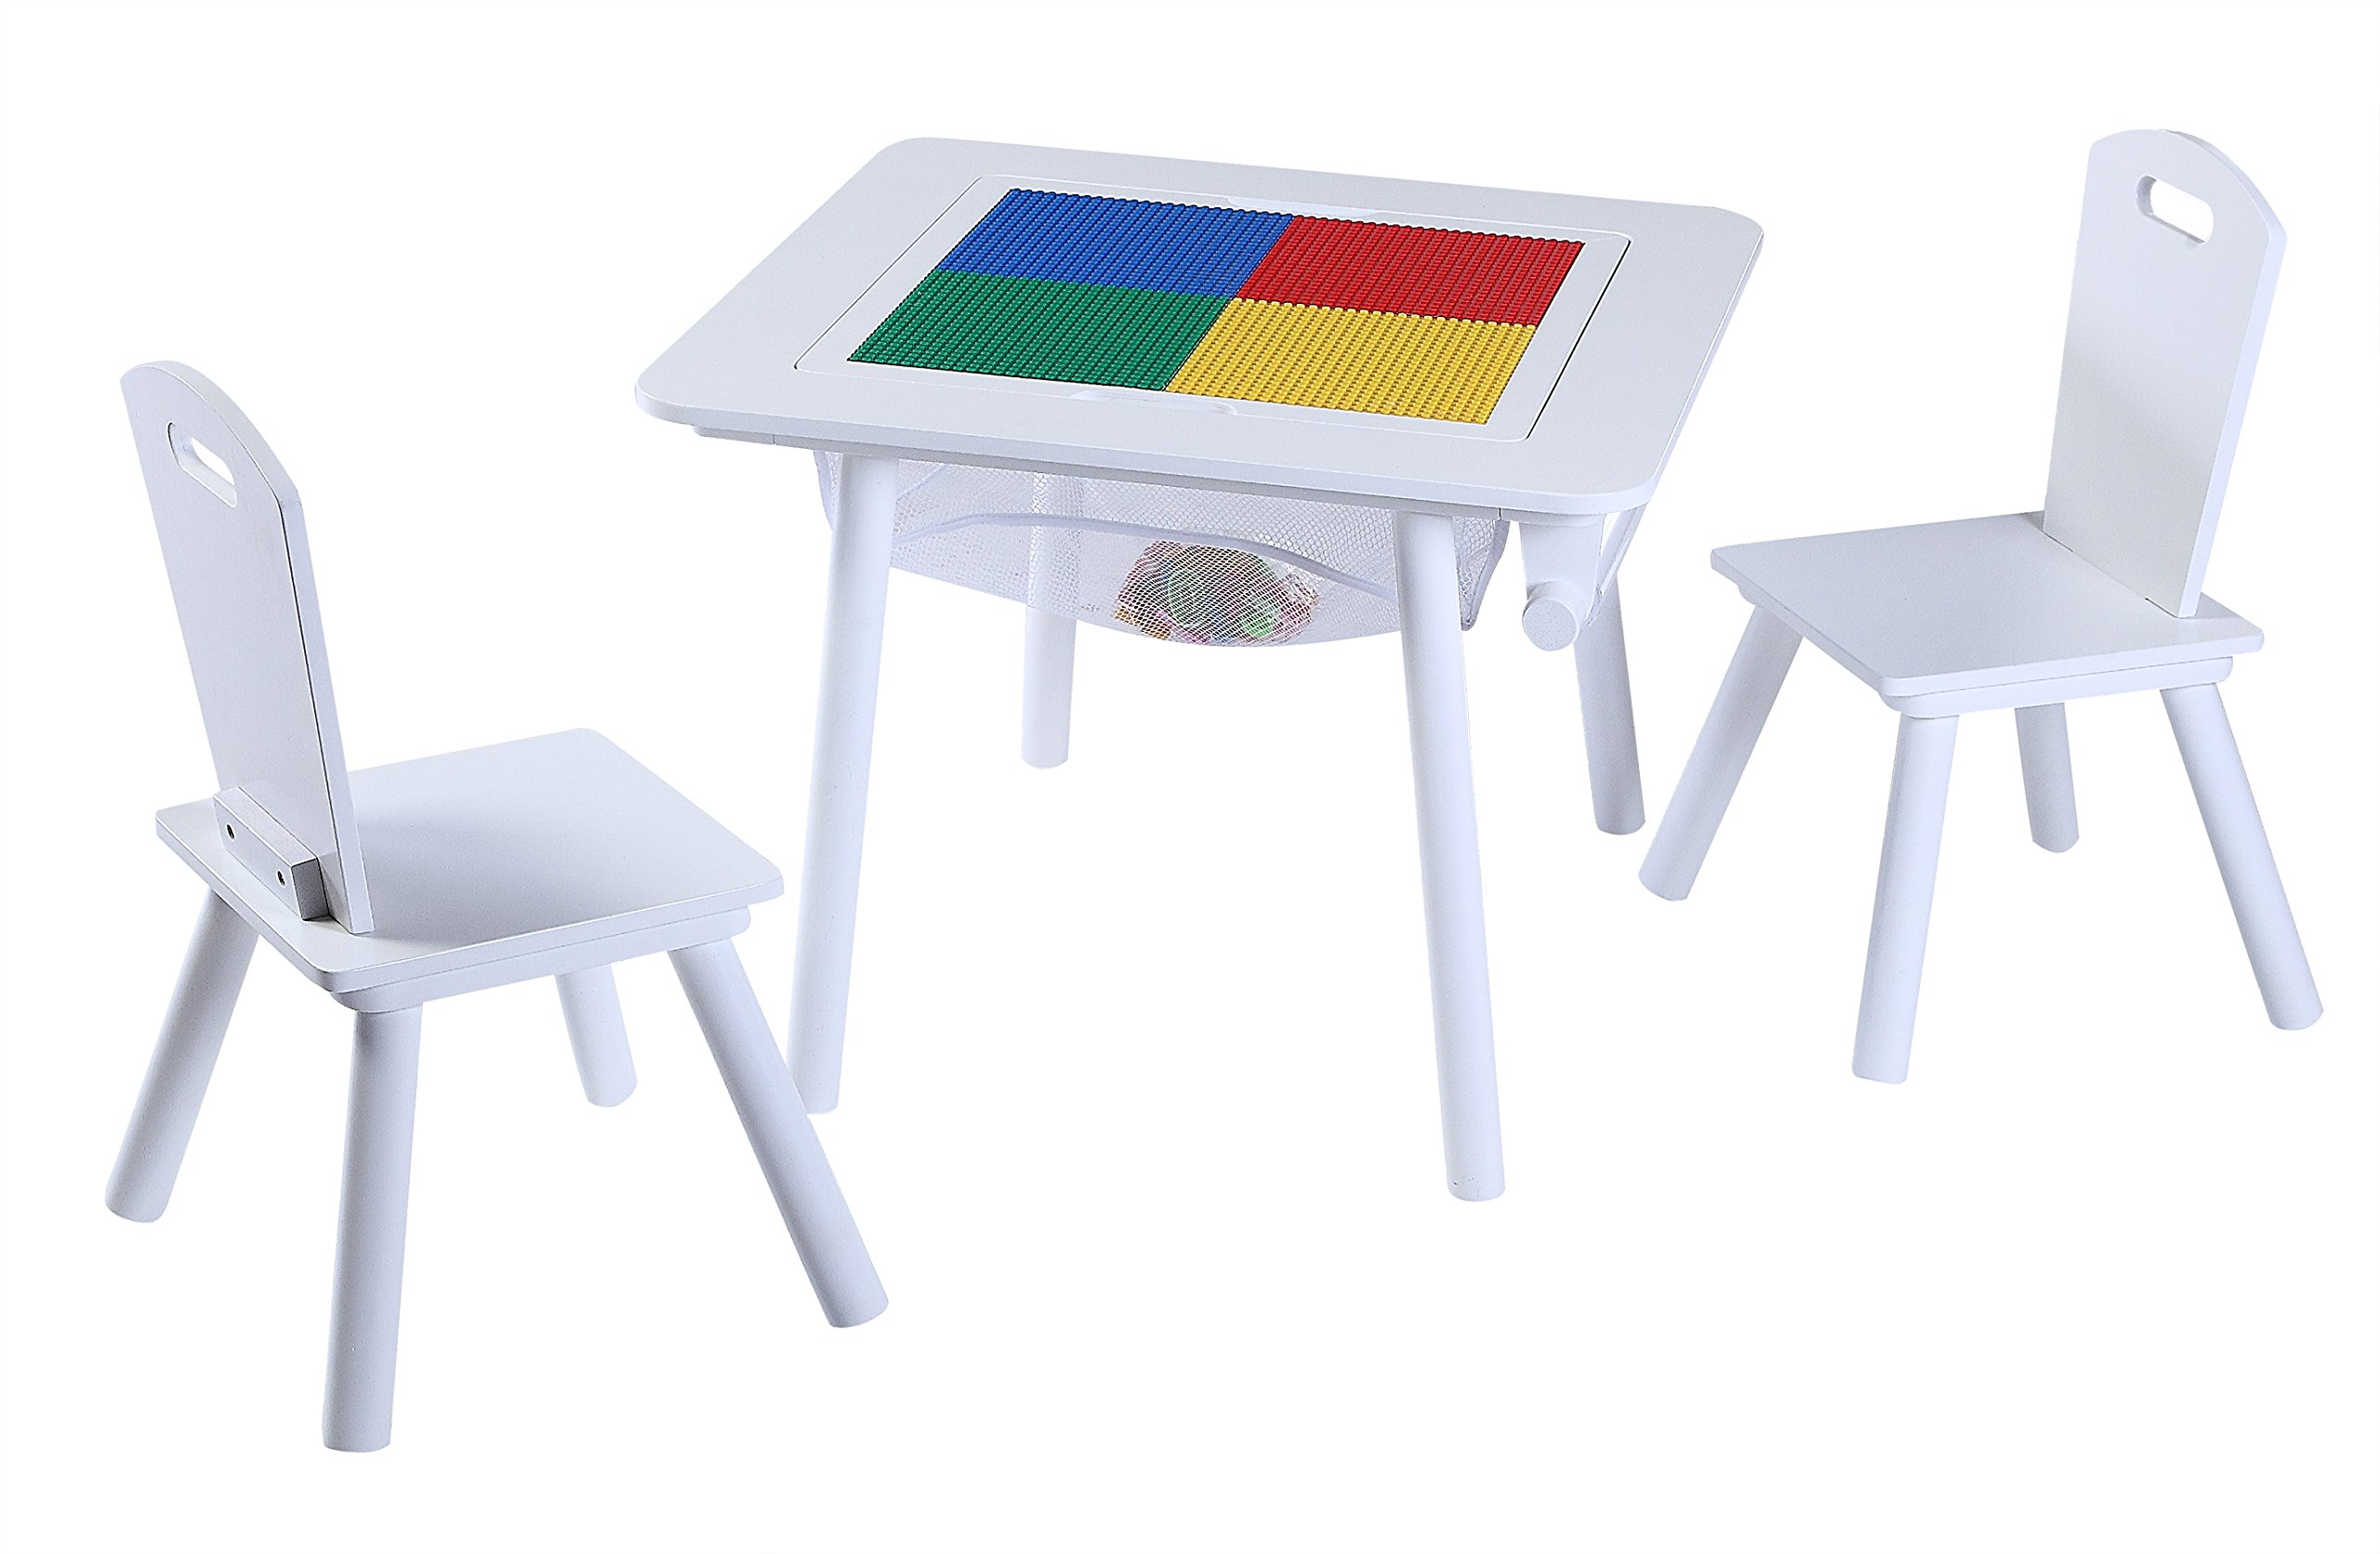 O'Kids 4-in-1 Flip Top Multi-Function Wooden Activity Table and Chair Set, White